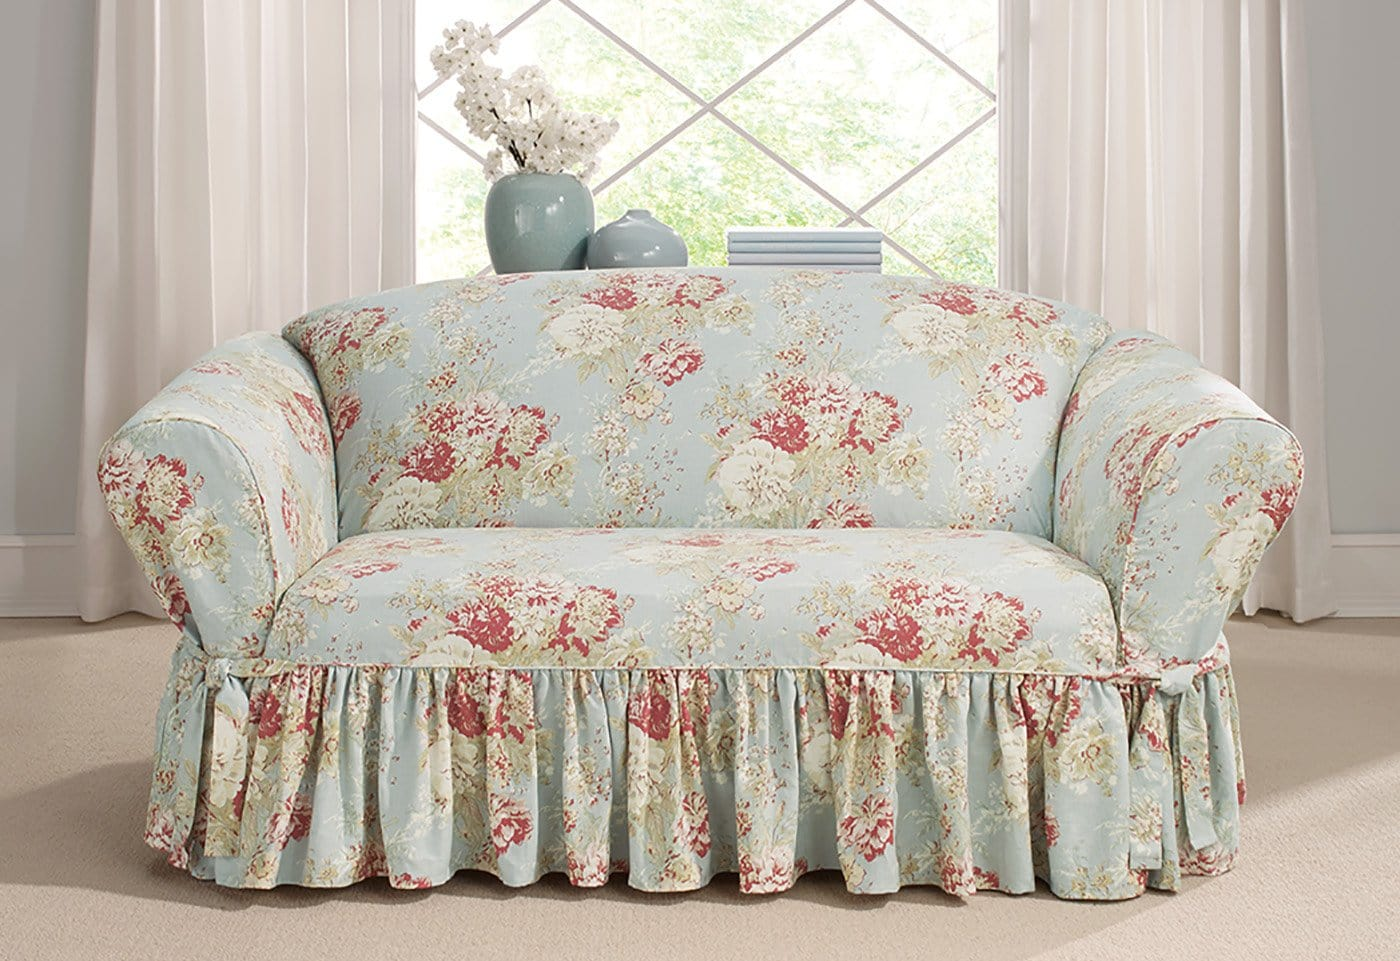 Ballad Bouquet By Waverly One Piece Loveseat Slipcover Ruffled Skirt 100% Cotton Machine Washable - Loveseat / Box Cushion / Robins Egg